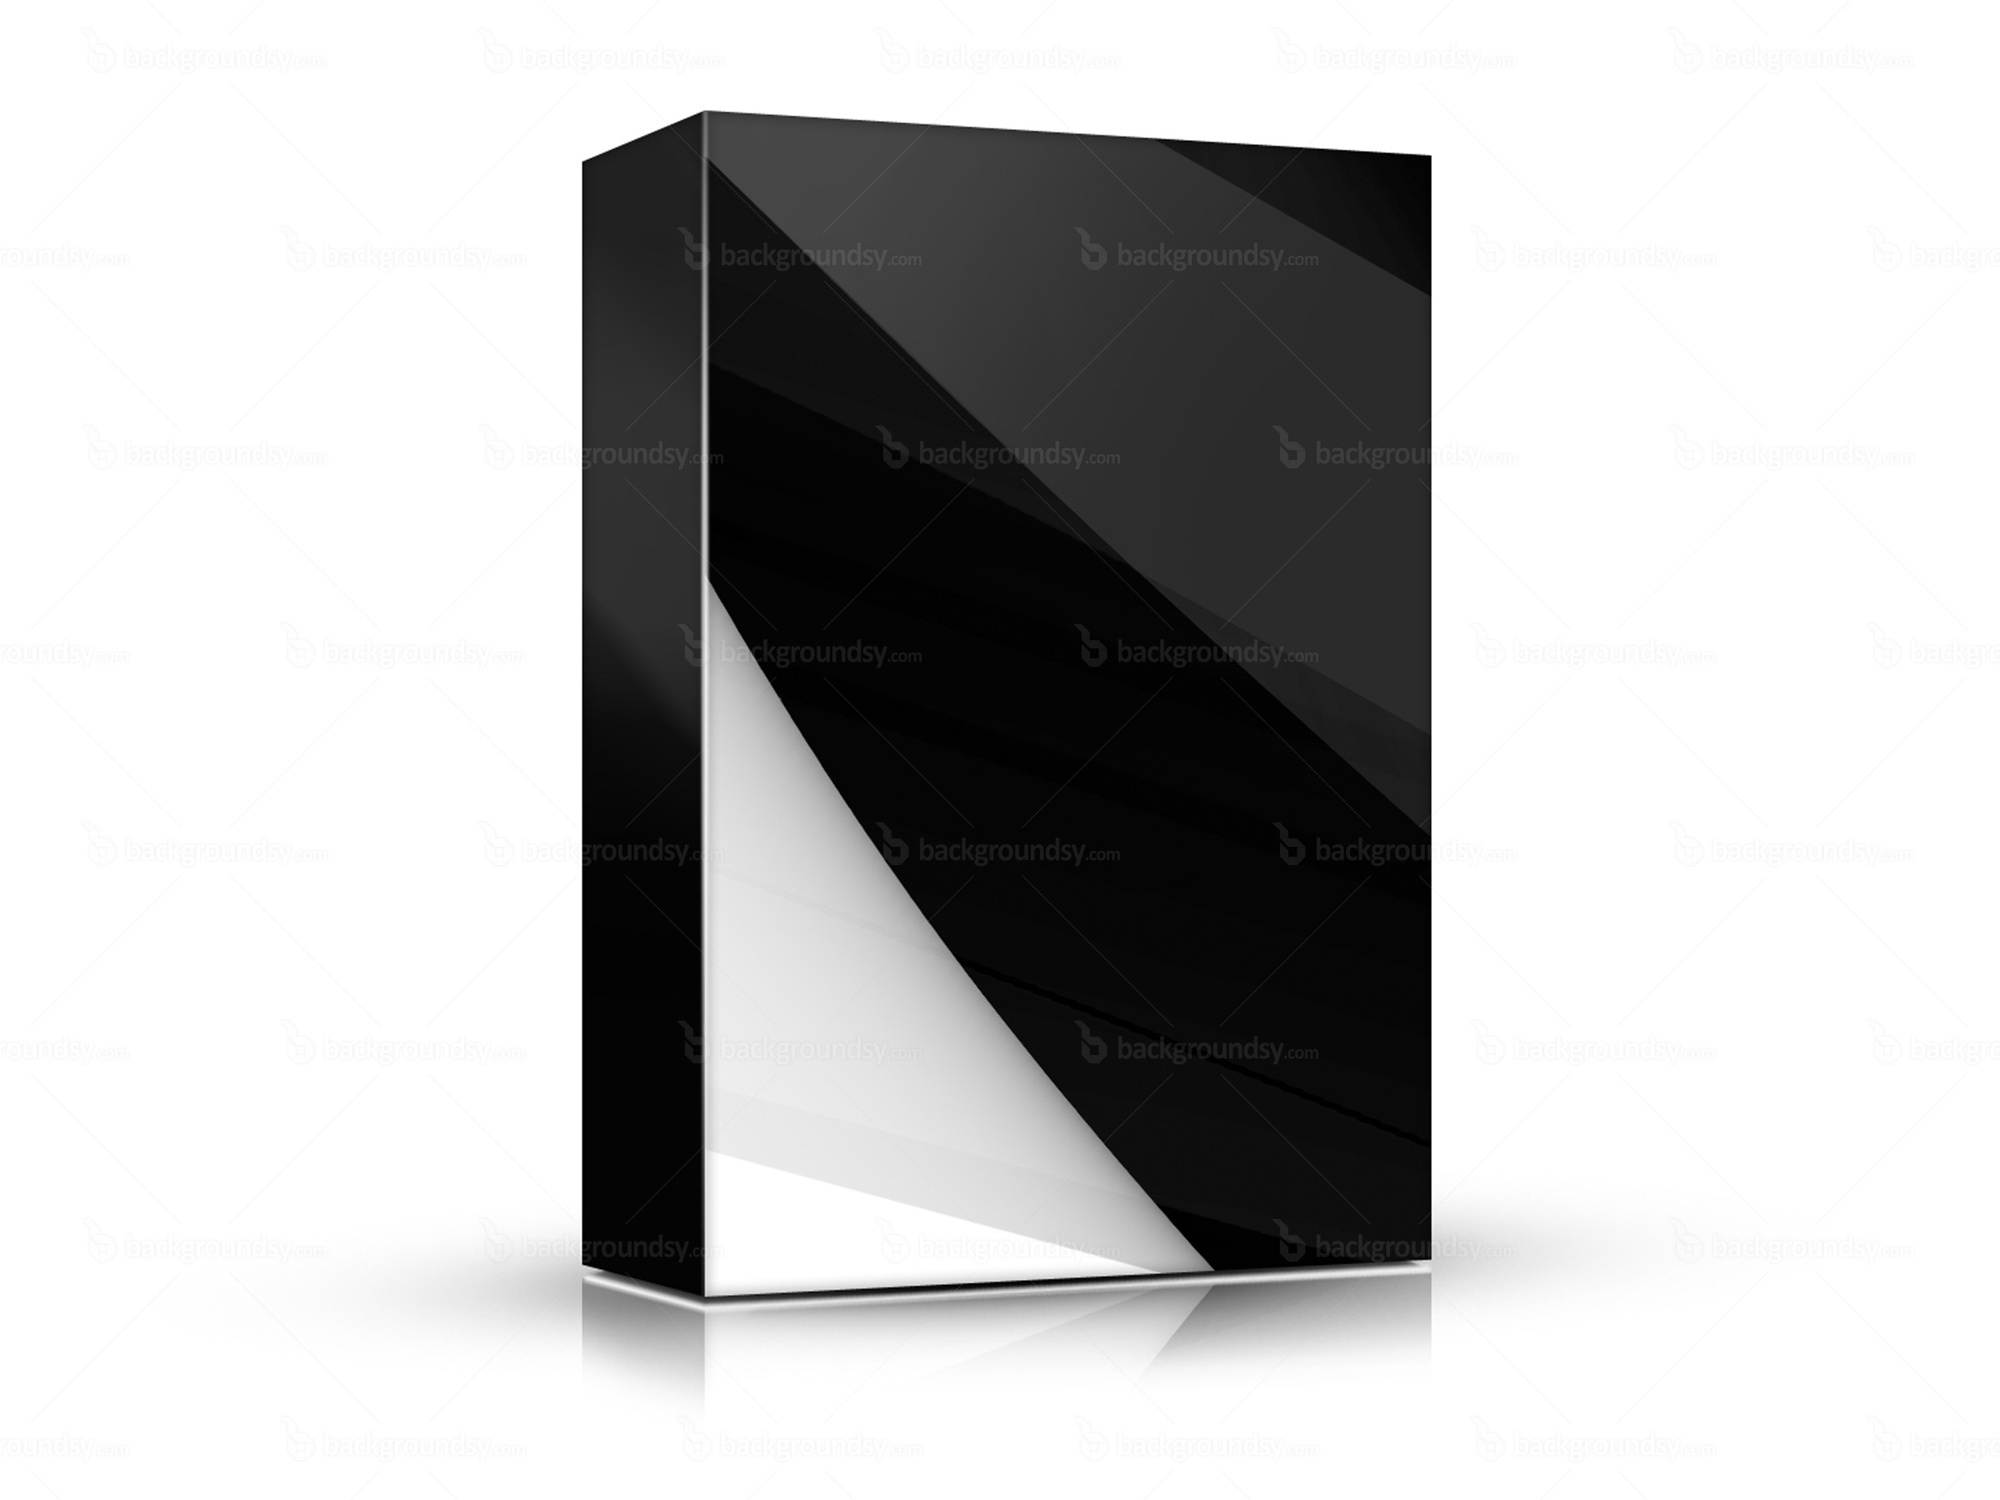 Black And White Home Wallpaper Black Amp White Box Backgroundsy Com